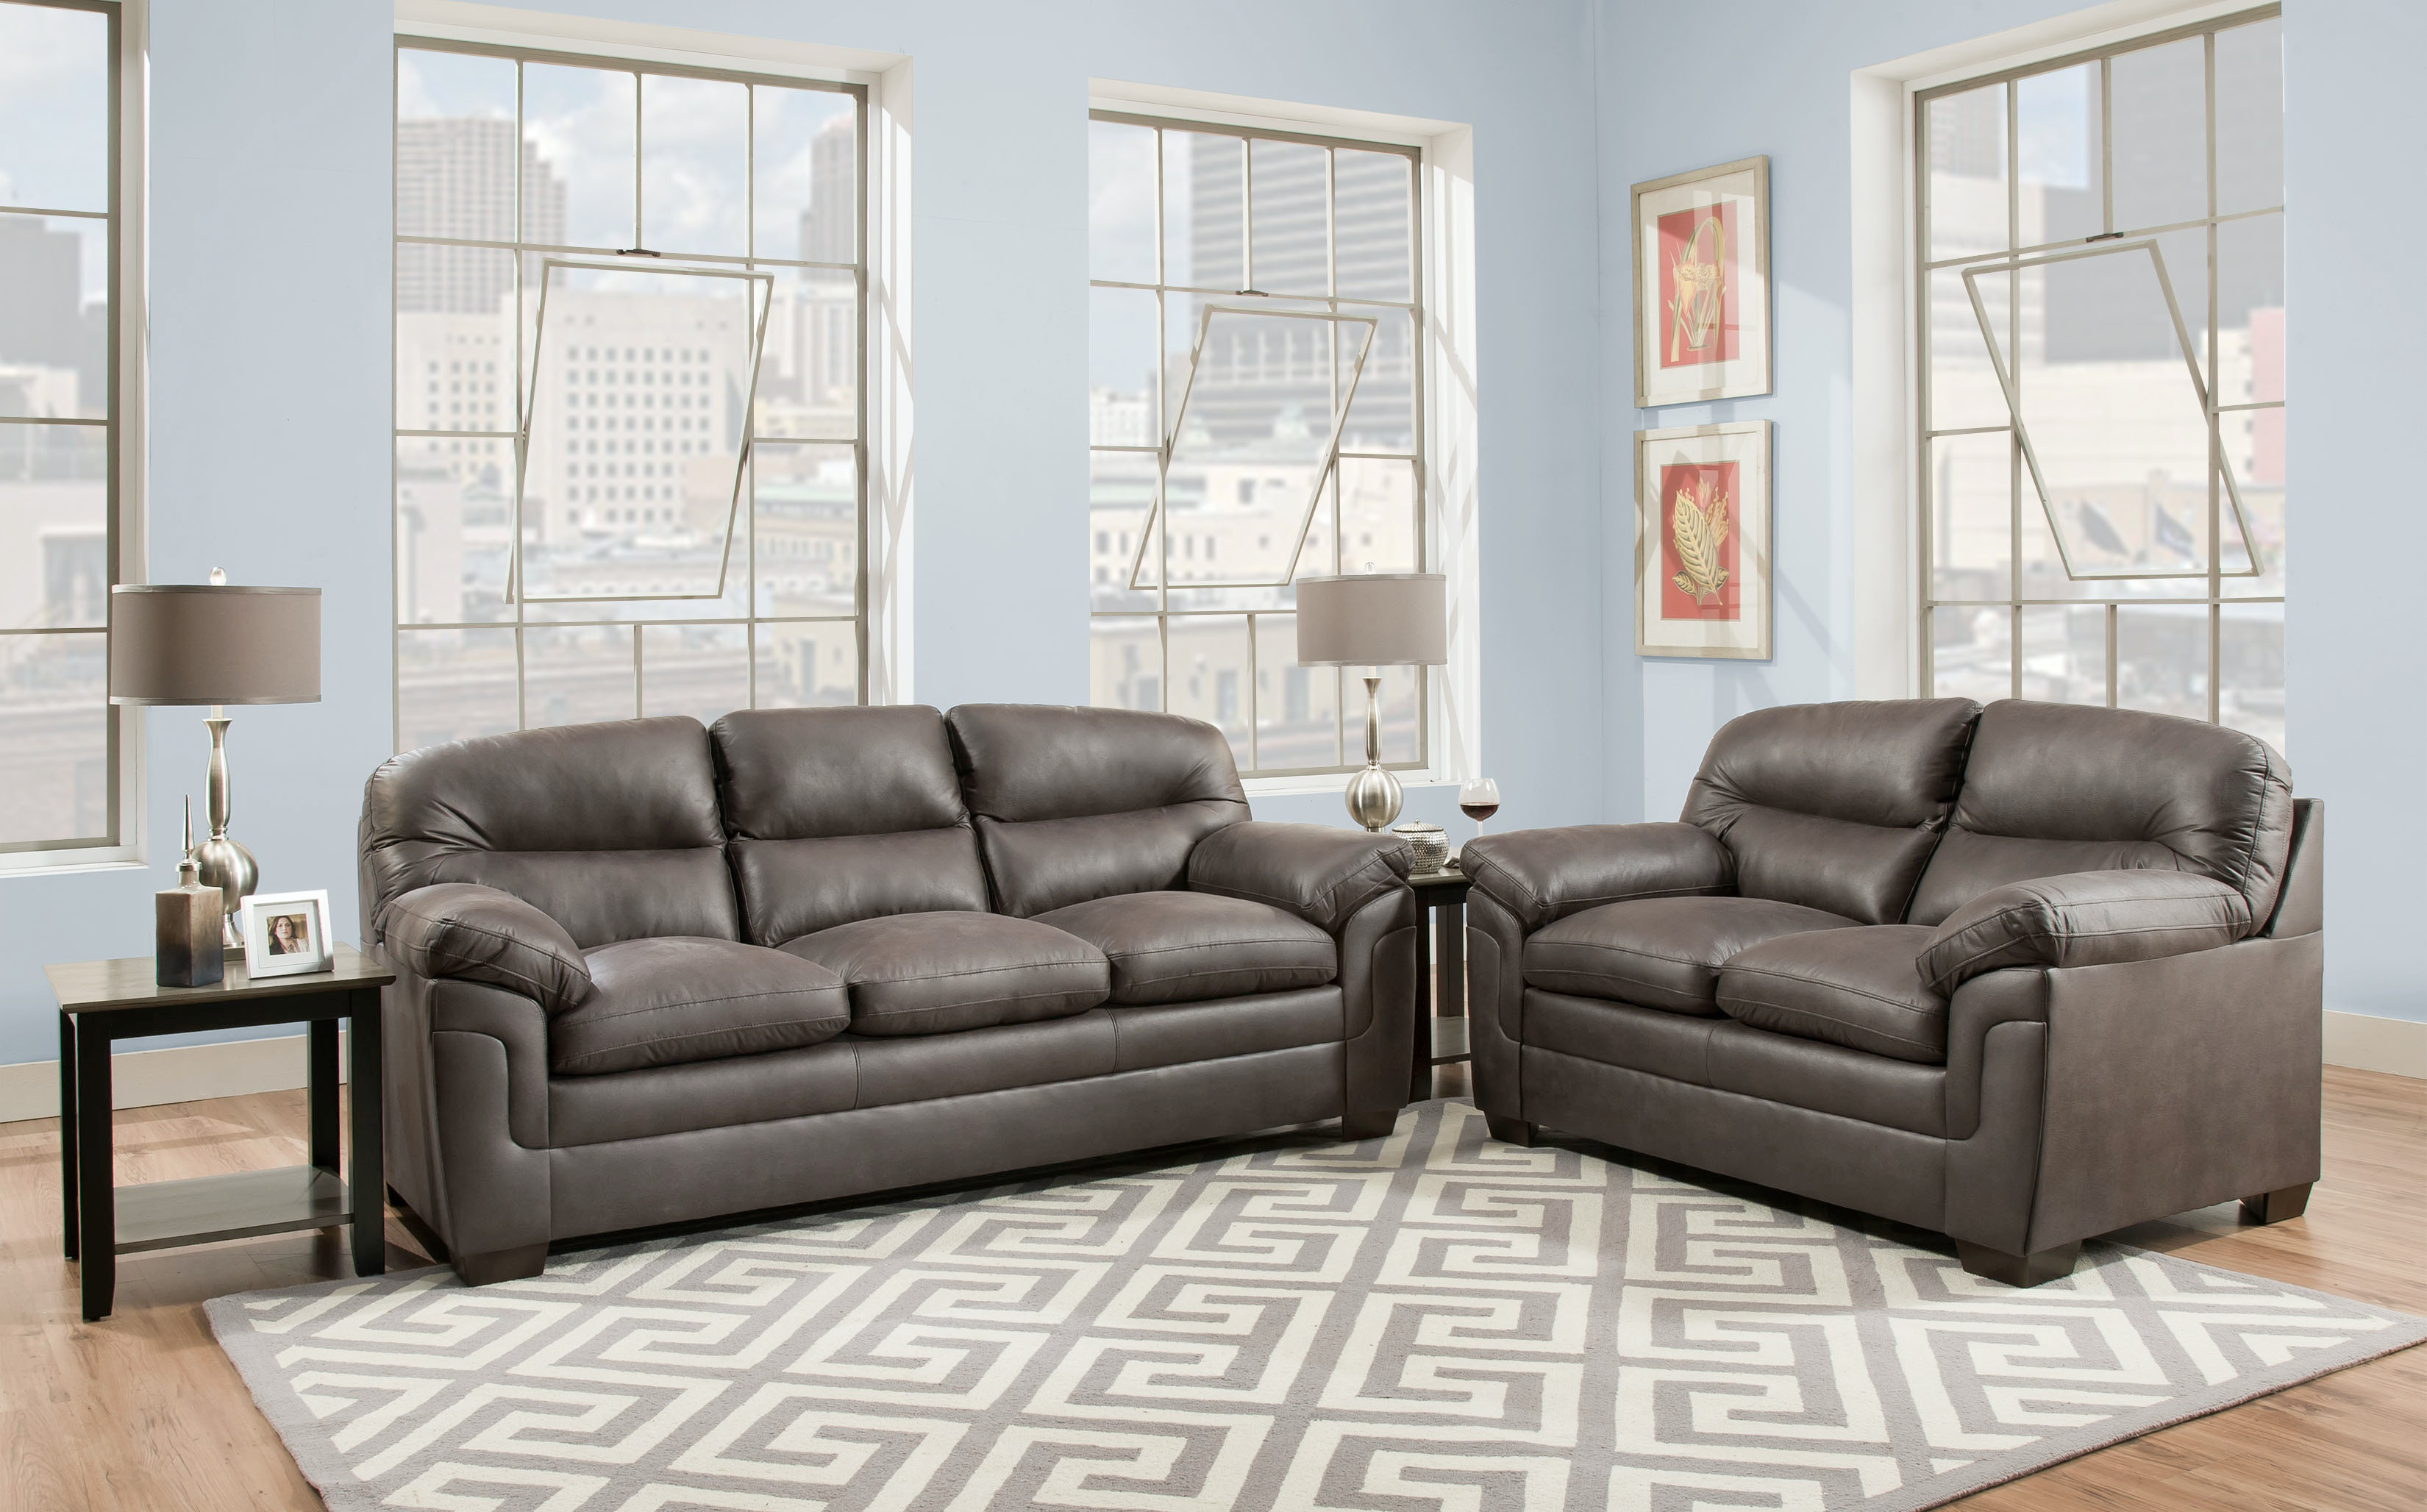 Shiloh 2 Piece Living Room Set KT:85365 Part 29